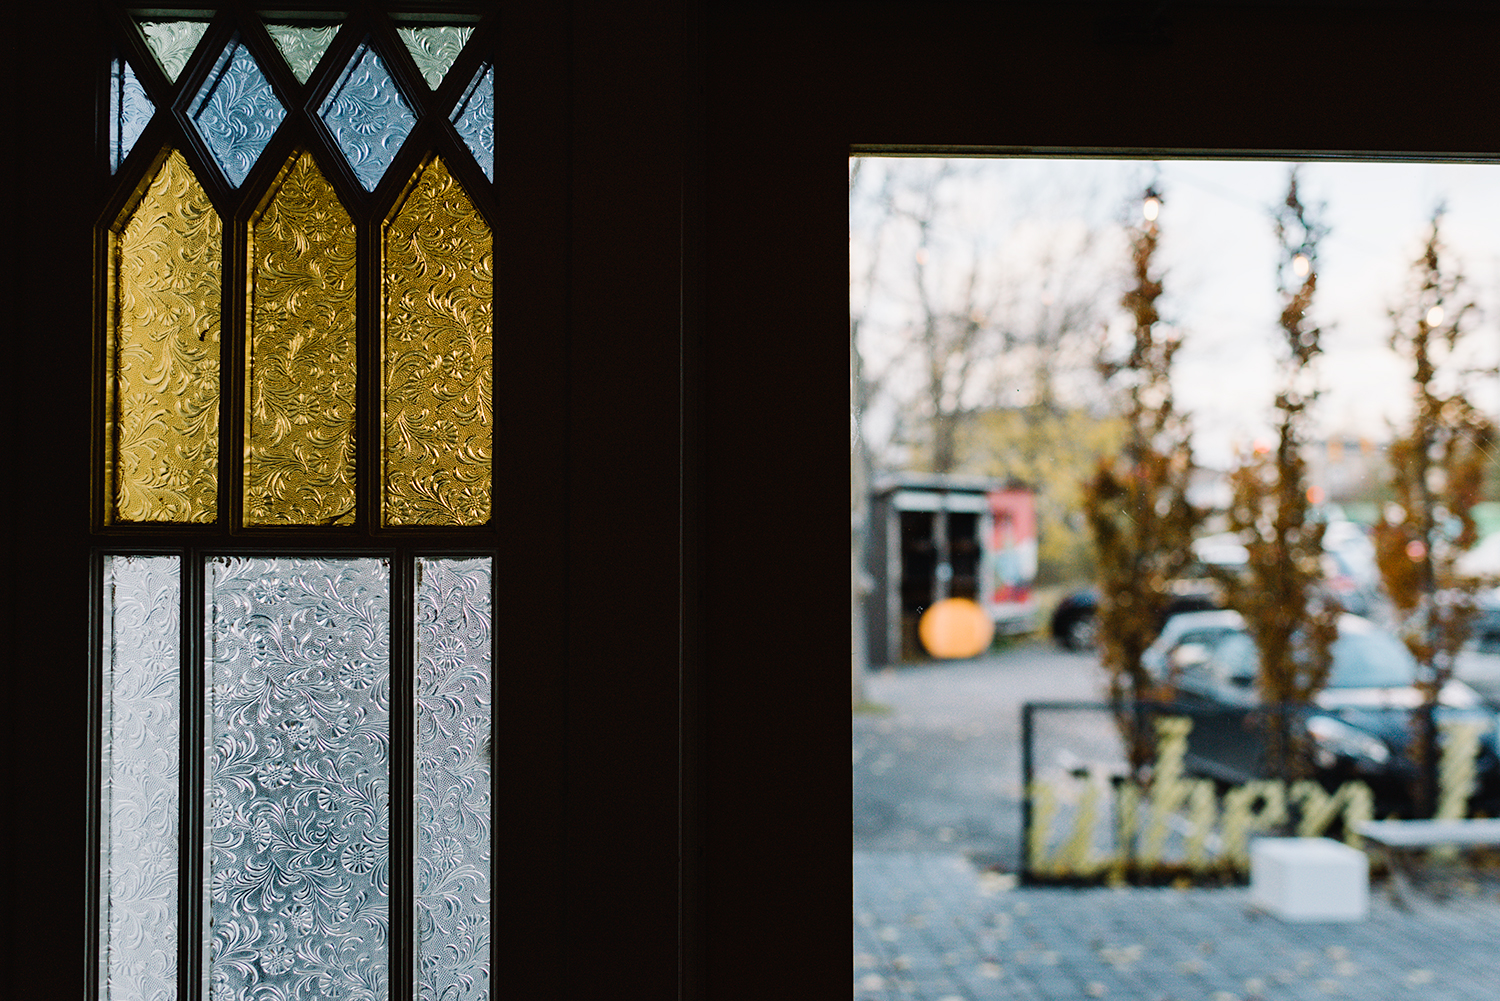 Prince-Edward-County-Wedding-Photographer-Drake-Hotel-Elopement-Venue-Detail-Windows.jpg